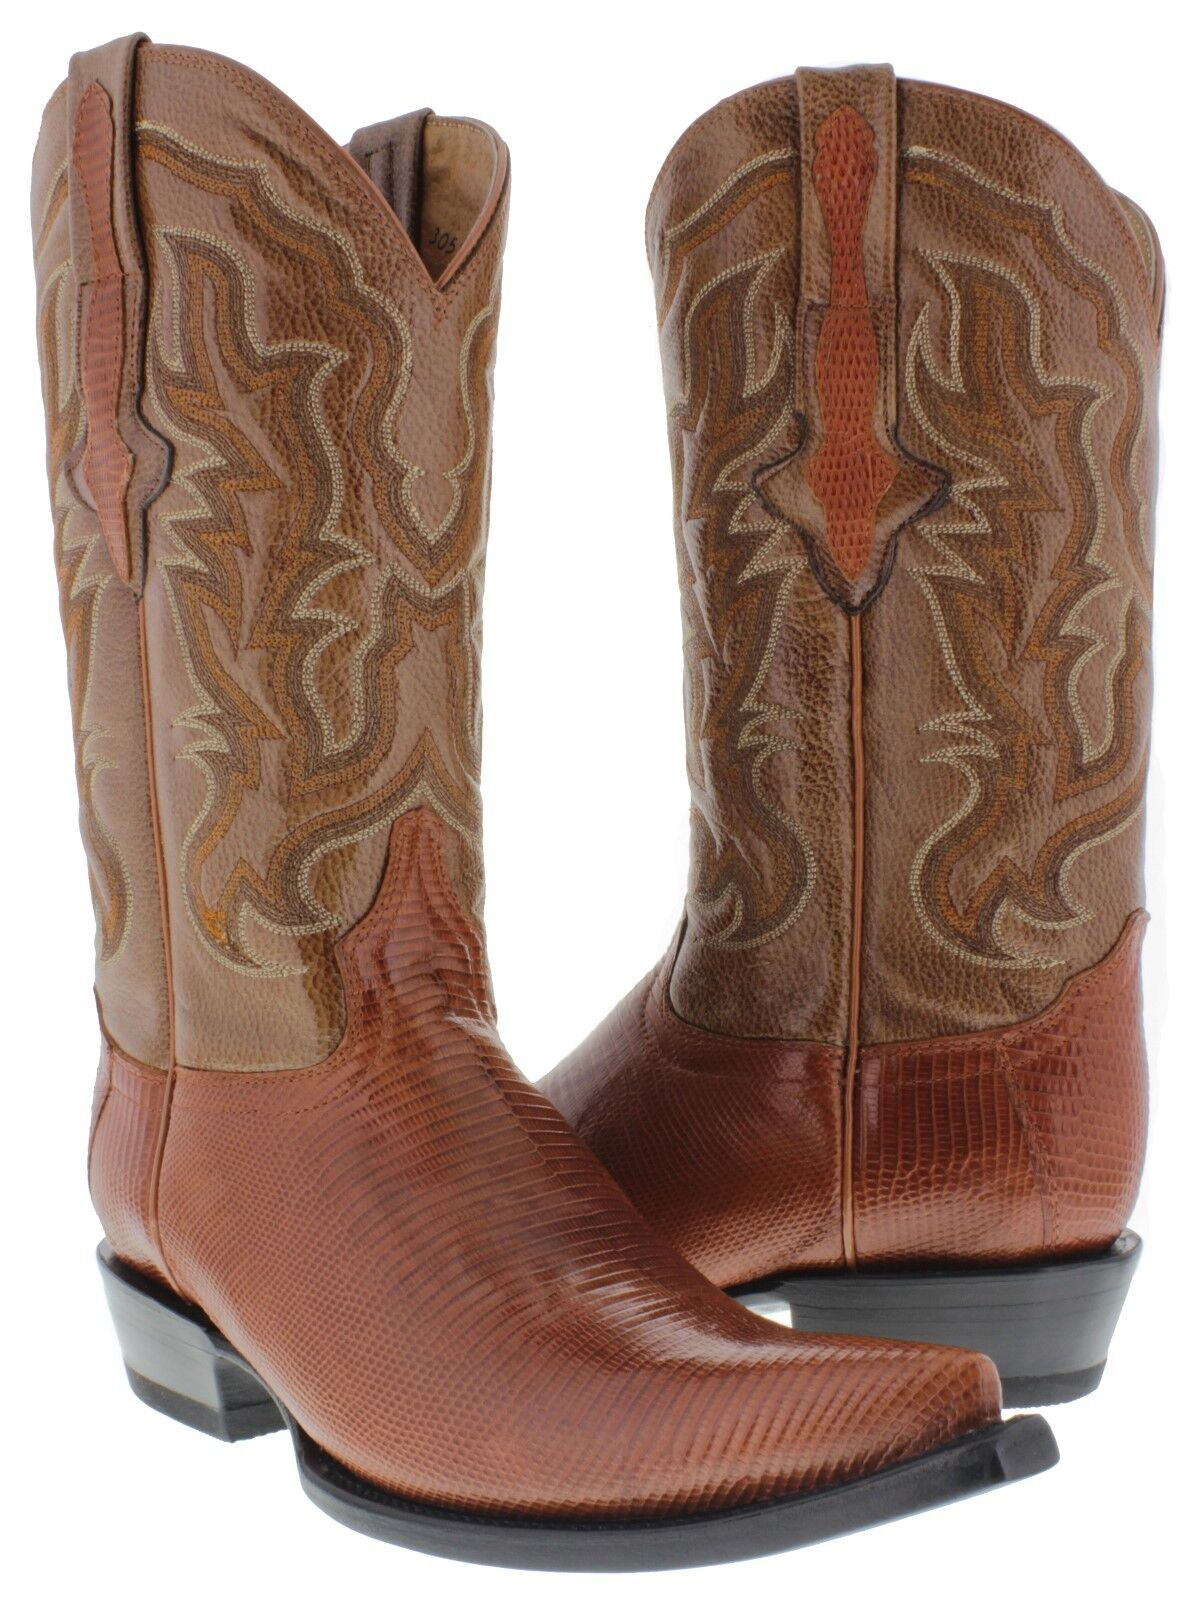 Mens cognac real lizard armadillo skin leather western cowboy boots 3x toe